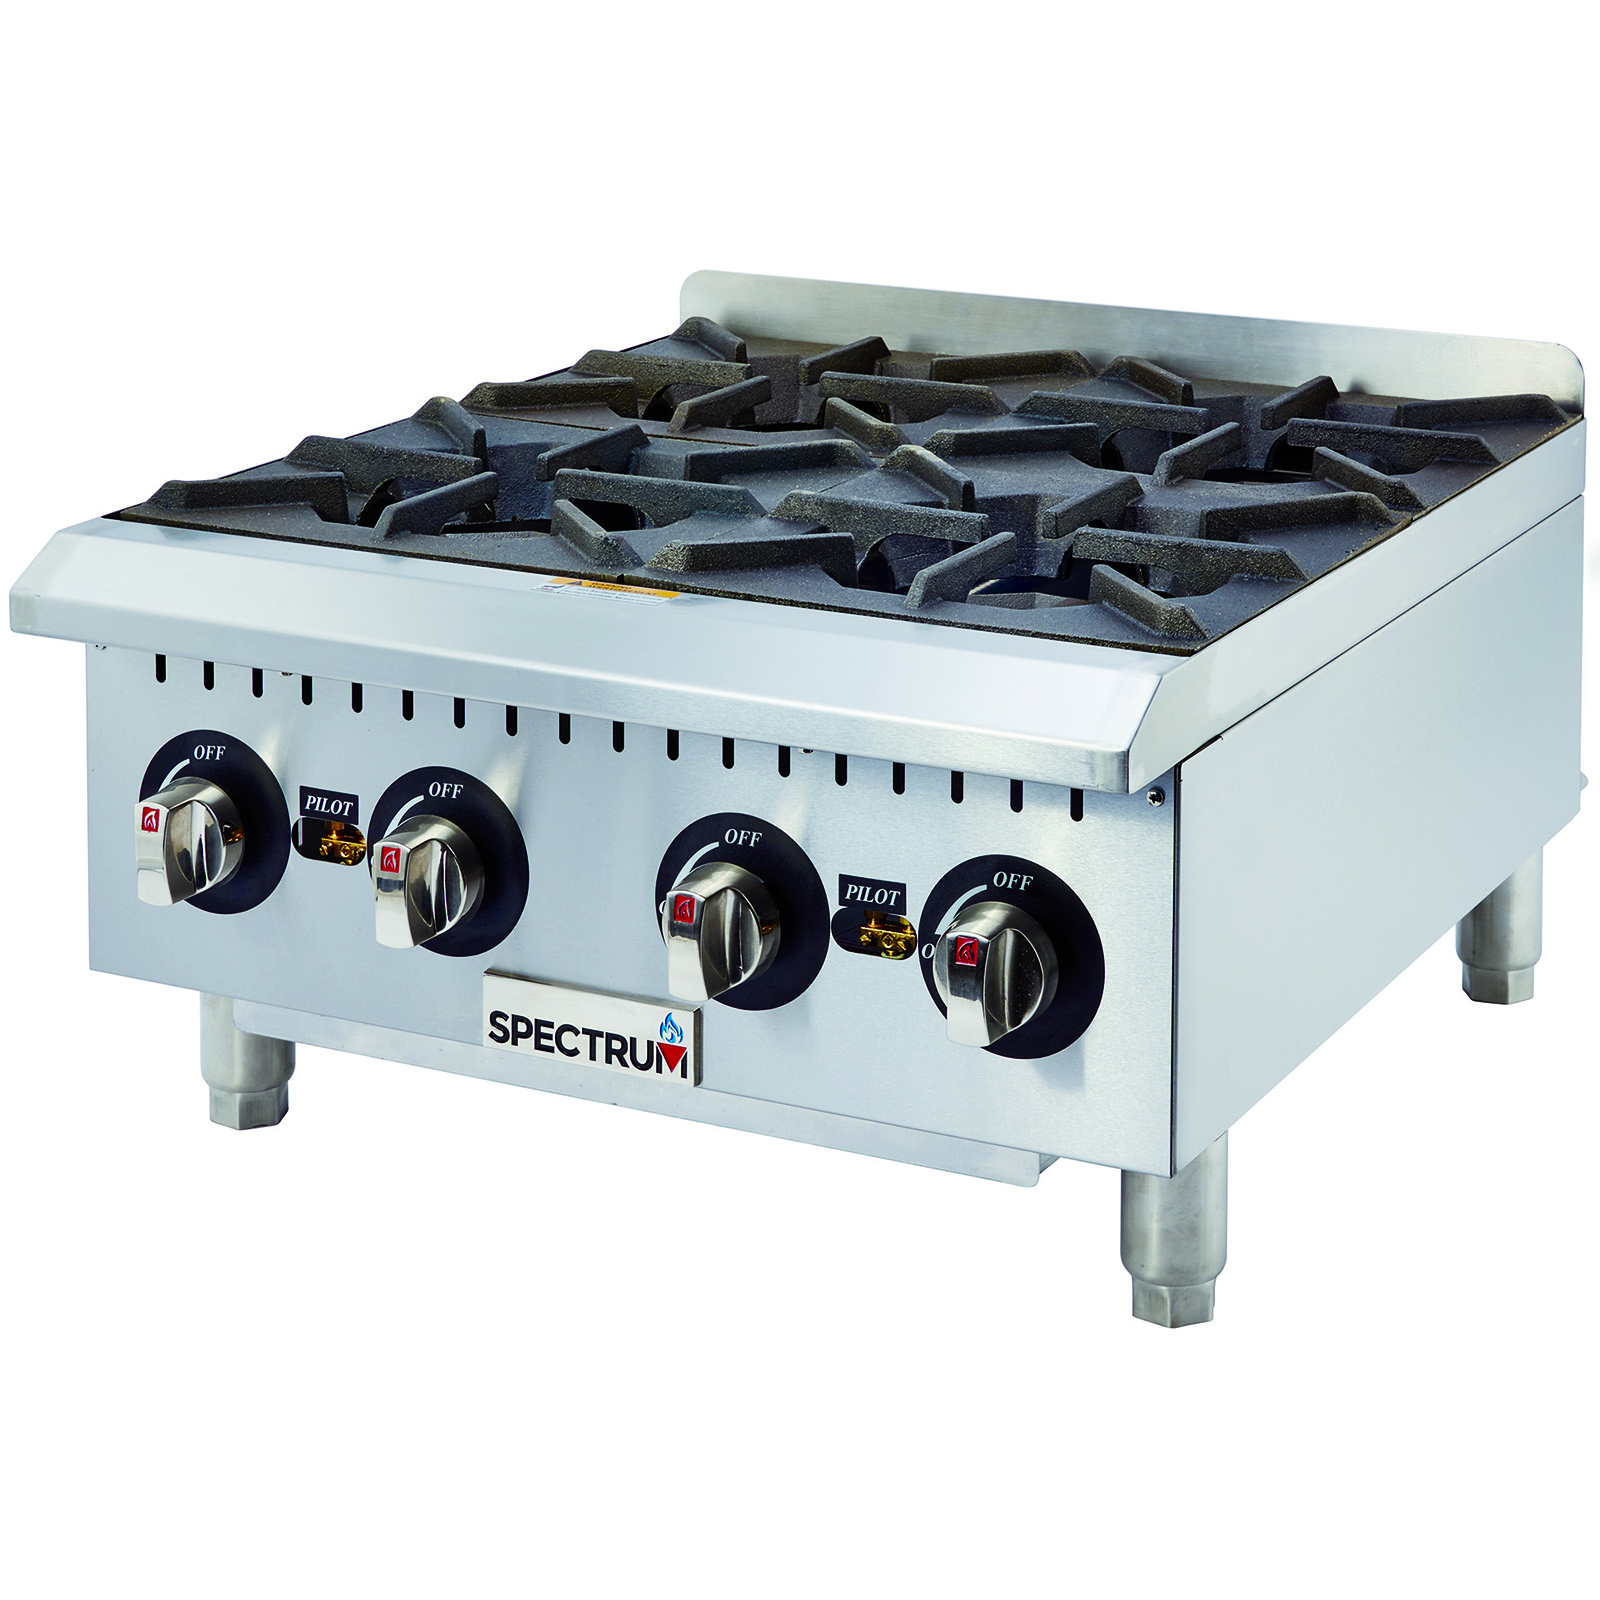 Winco GHP-4 hotplate, countertop, gas